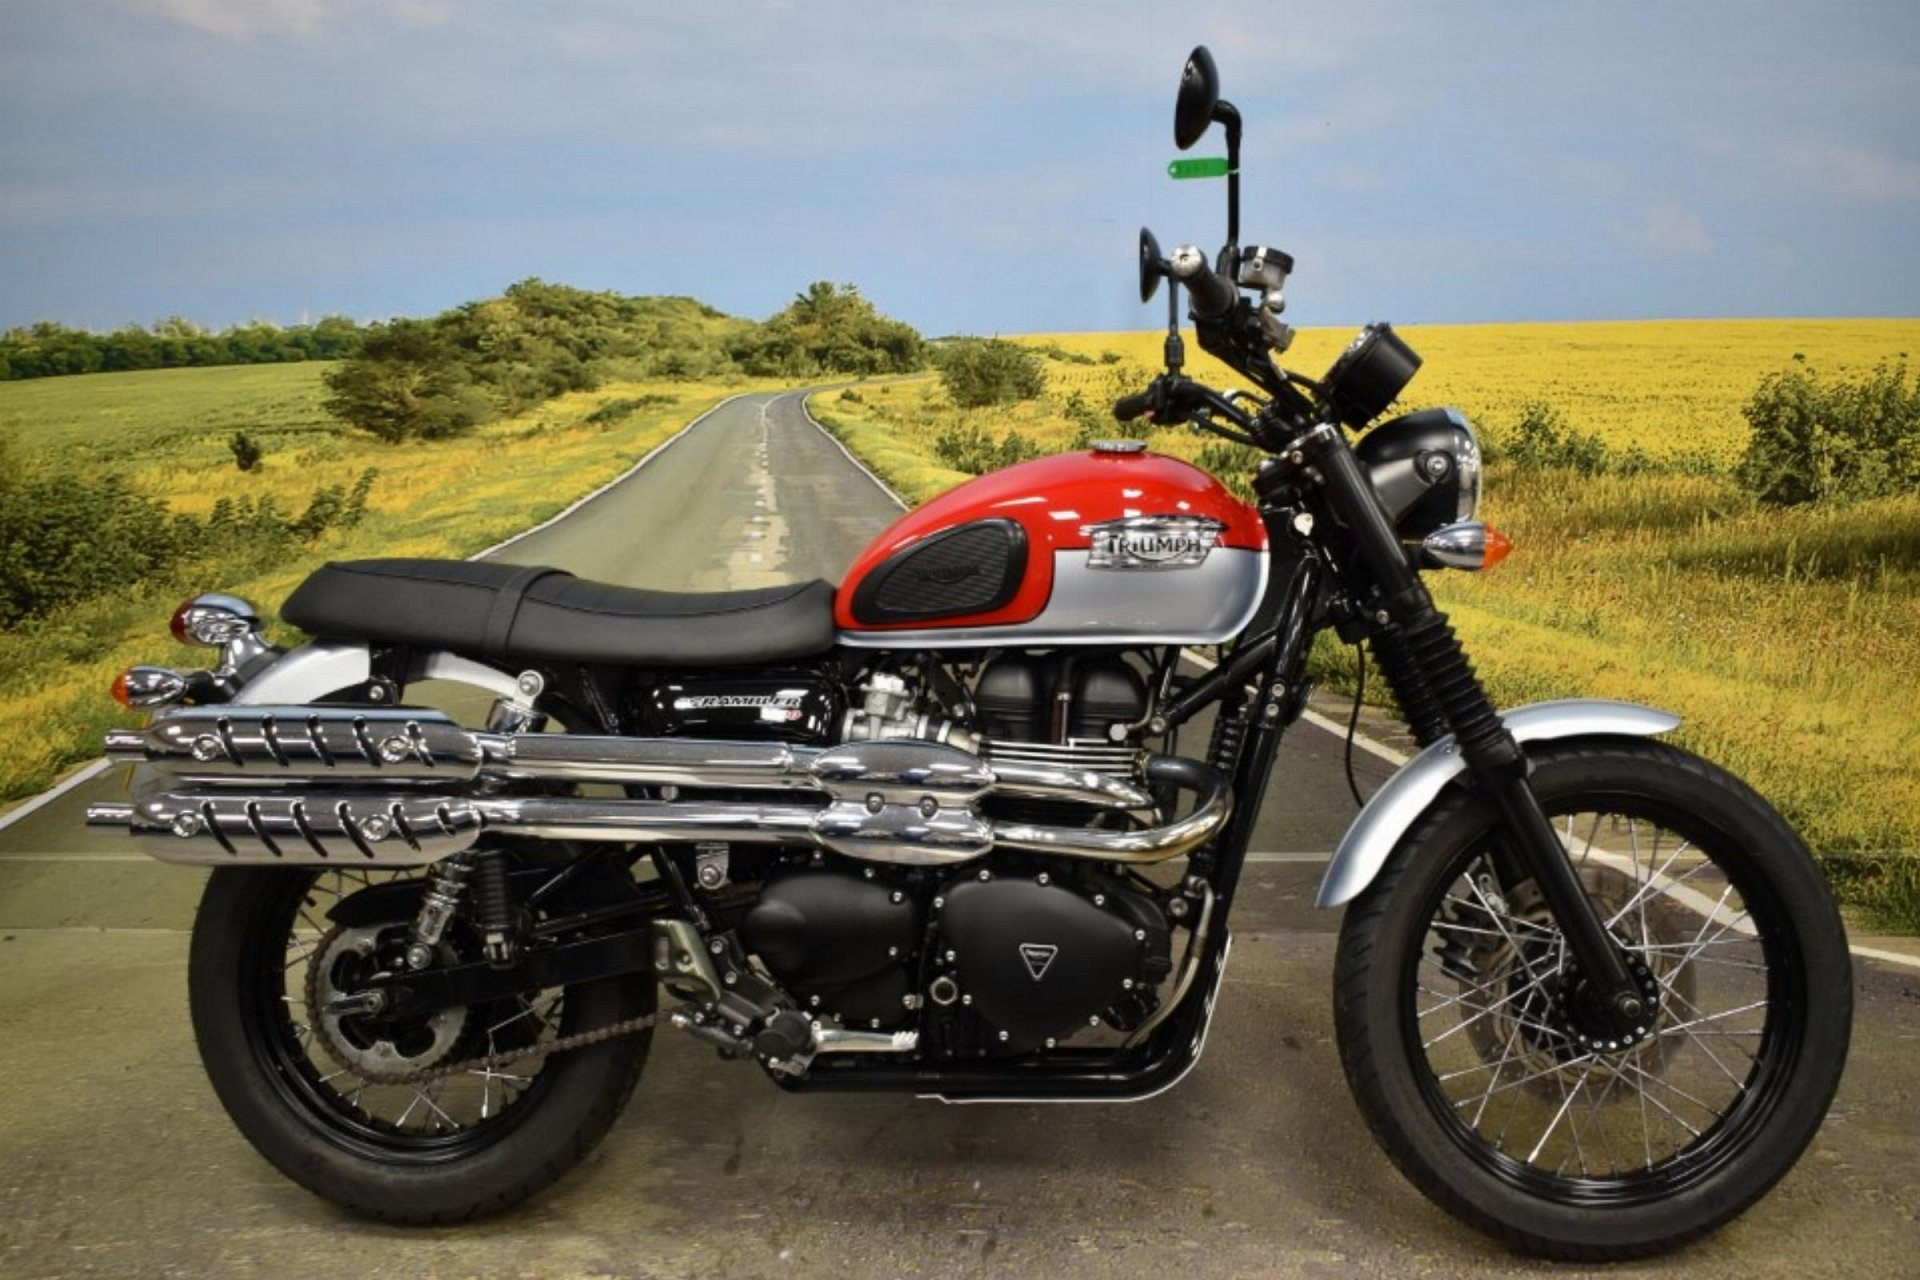 2017 Triumph Scrambler for sale in Greater Manchester